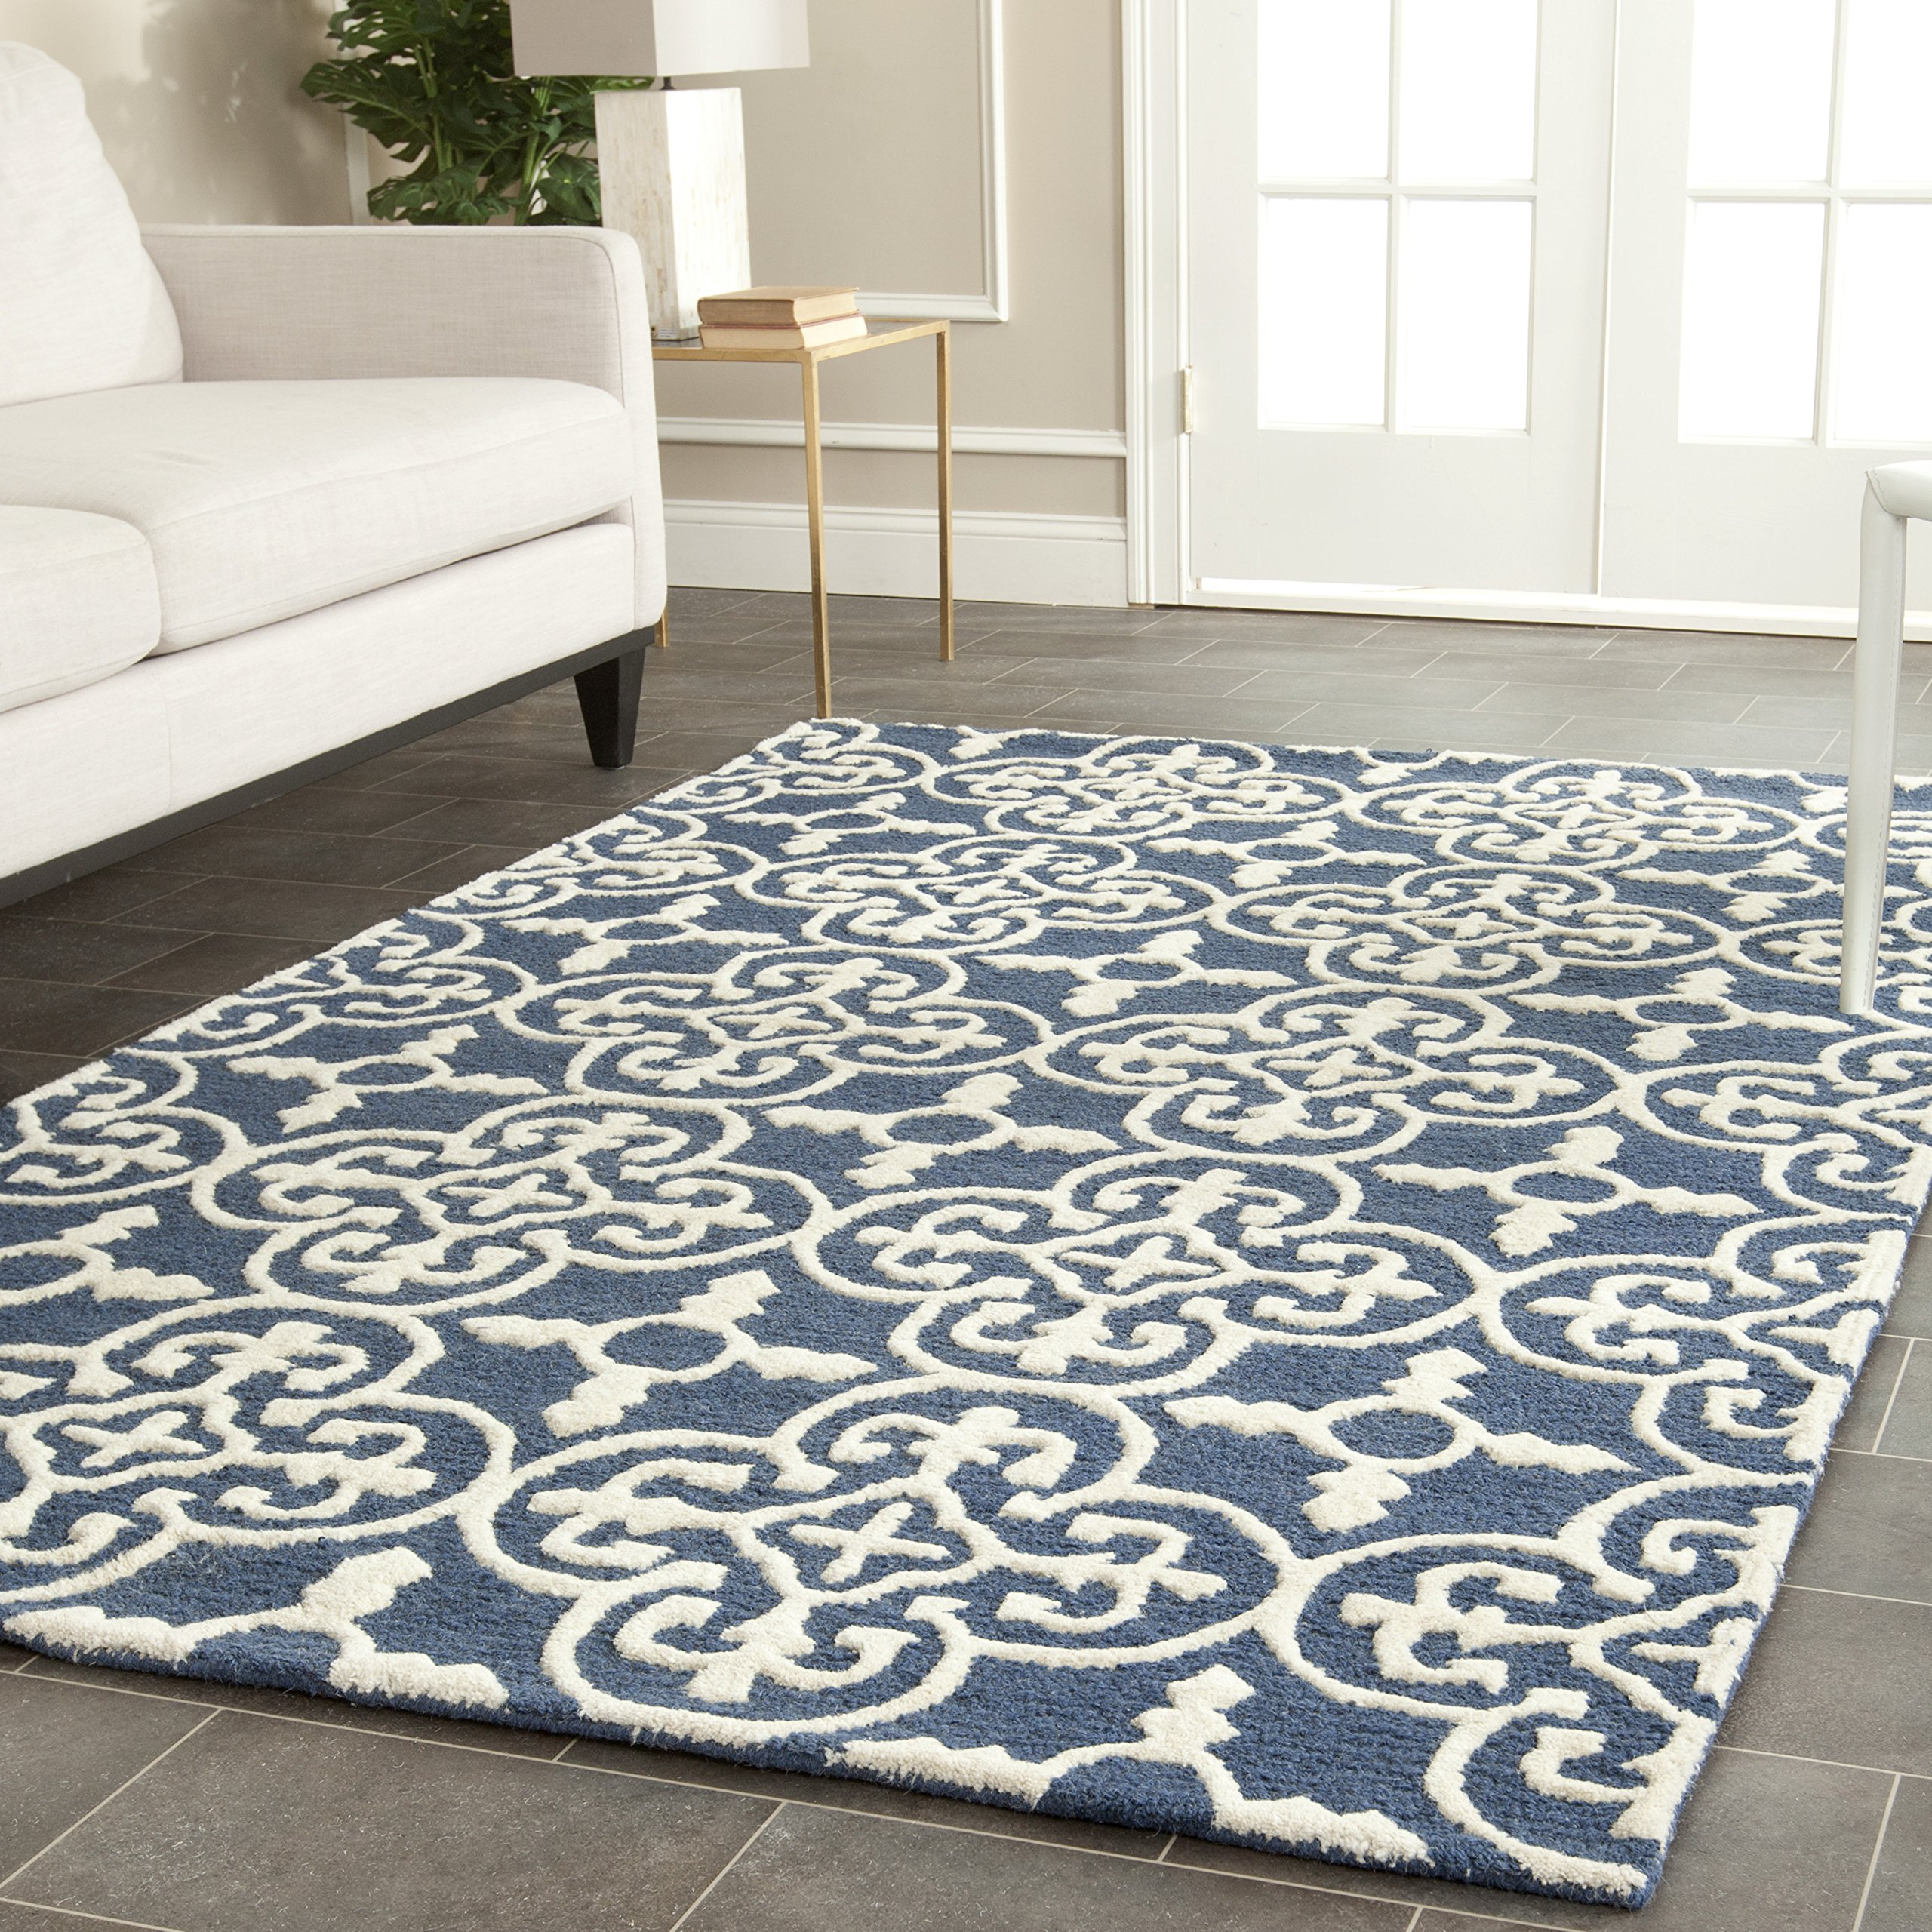 Safavieh Cambridge Collection CAM133G Handcrafted Moroccan Geometric Navy and Ivory Premium Wool Area Rug (4' x 6')